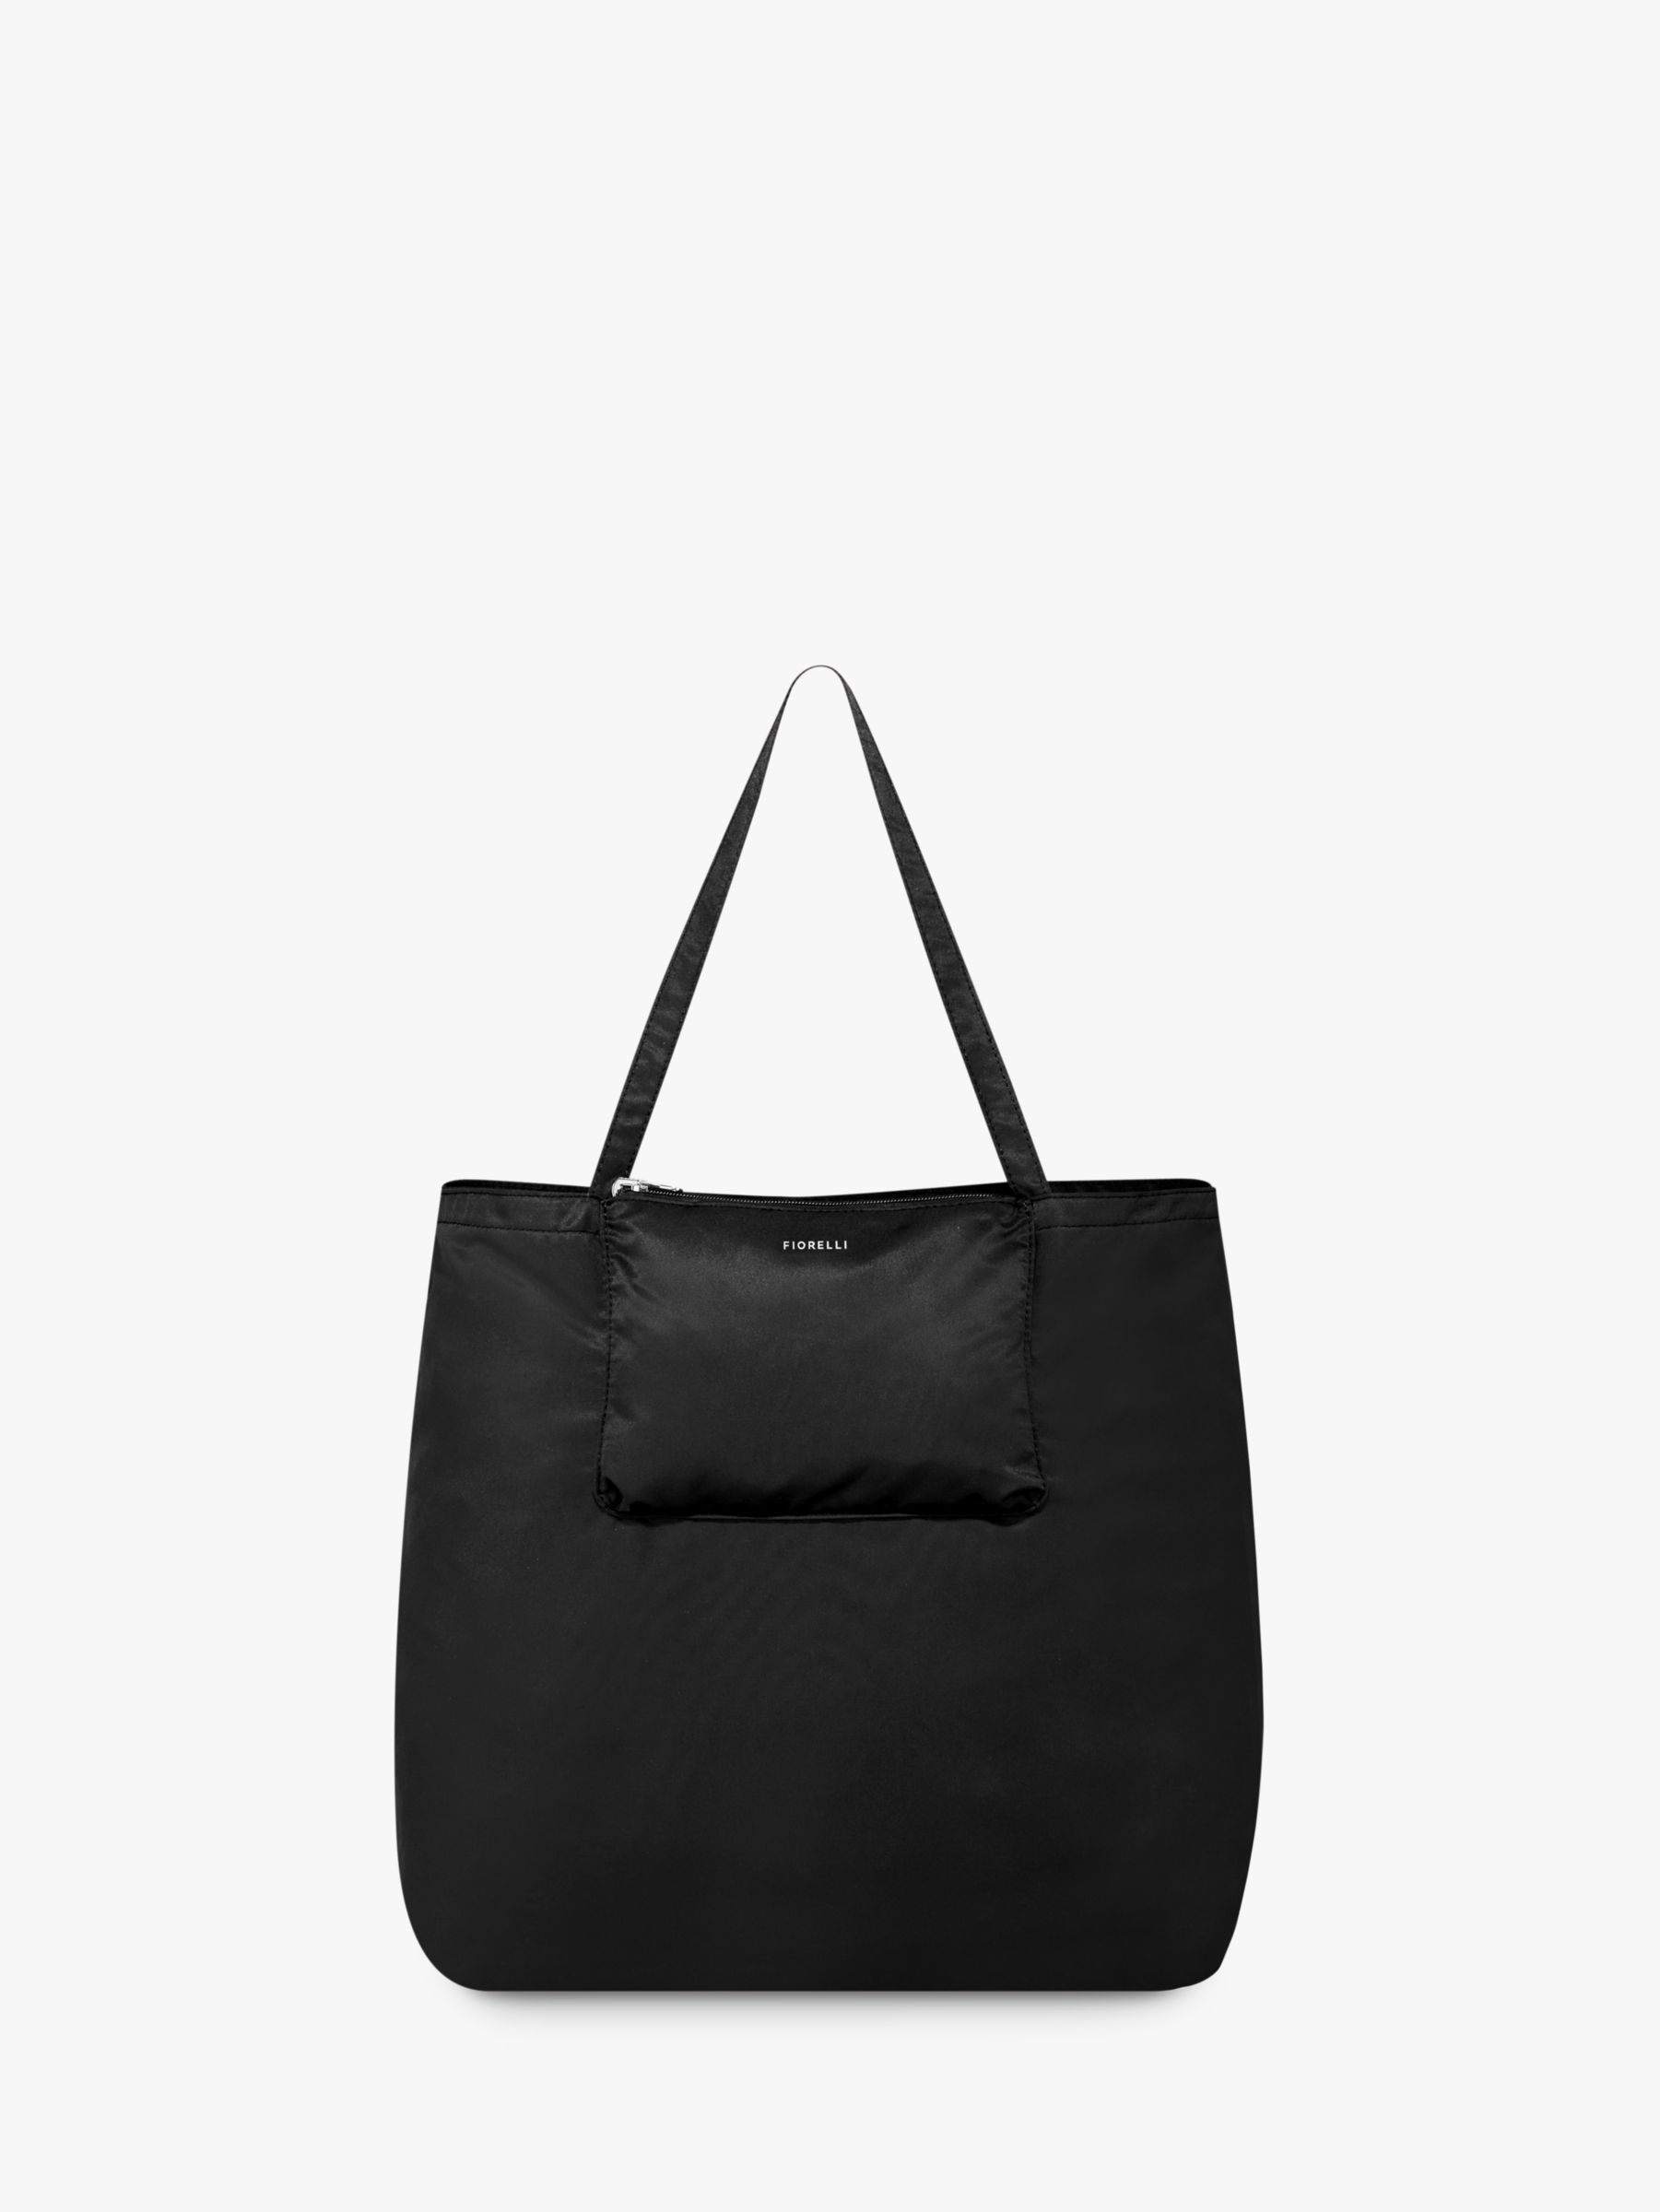 Fiorelli Fiorelli Swift Shopper Bag, Black